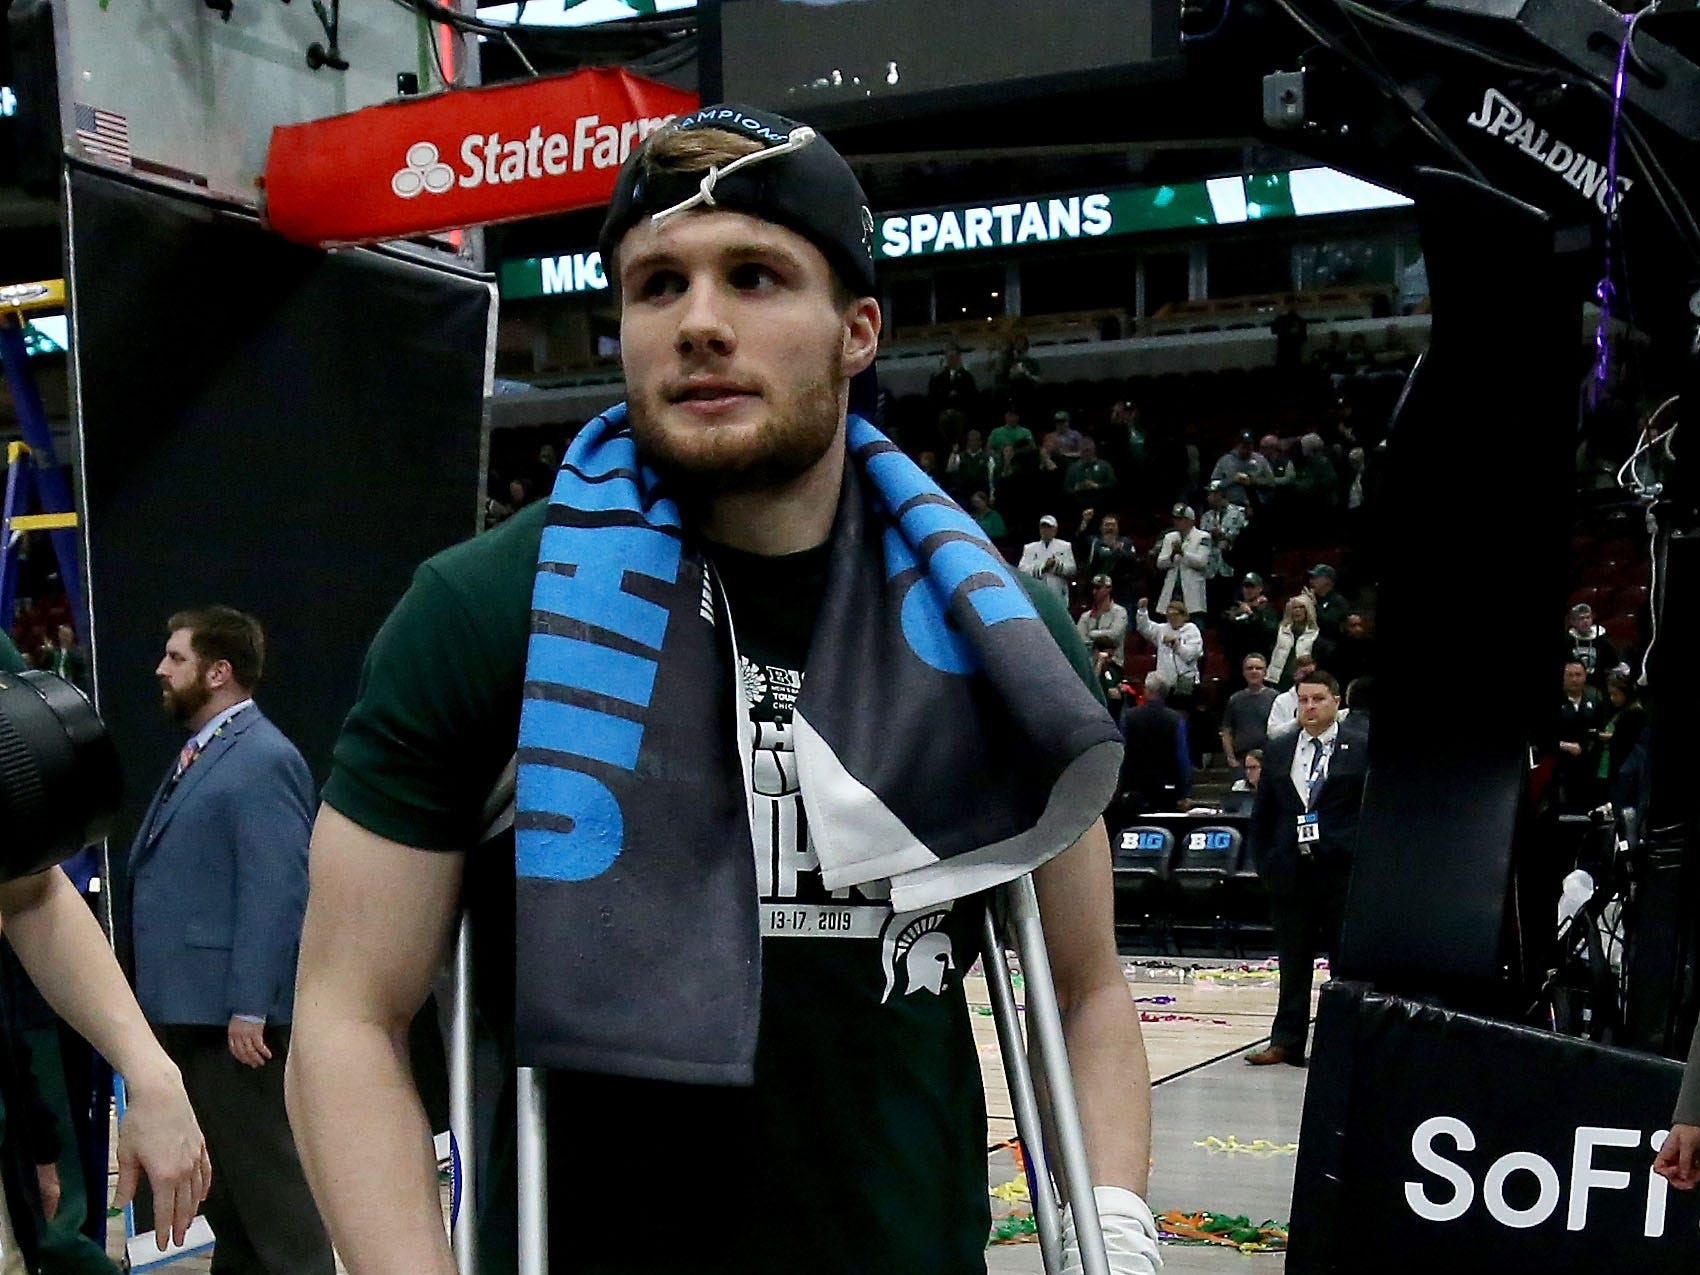 CHICAGO, ILLINOIS - MARCH 17:  Kyle Ahrens #0 of the Michigan State Spartans walks off the court after the Michigan State Spartans beat the Michigan Wolverines 65-60 in the championship game of the Big Ten Basketball Tournament at the United Center on March 17, 2019 in Chicago, Illinois. (Photo by Jonathan Daniel/Getty Images)